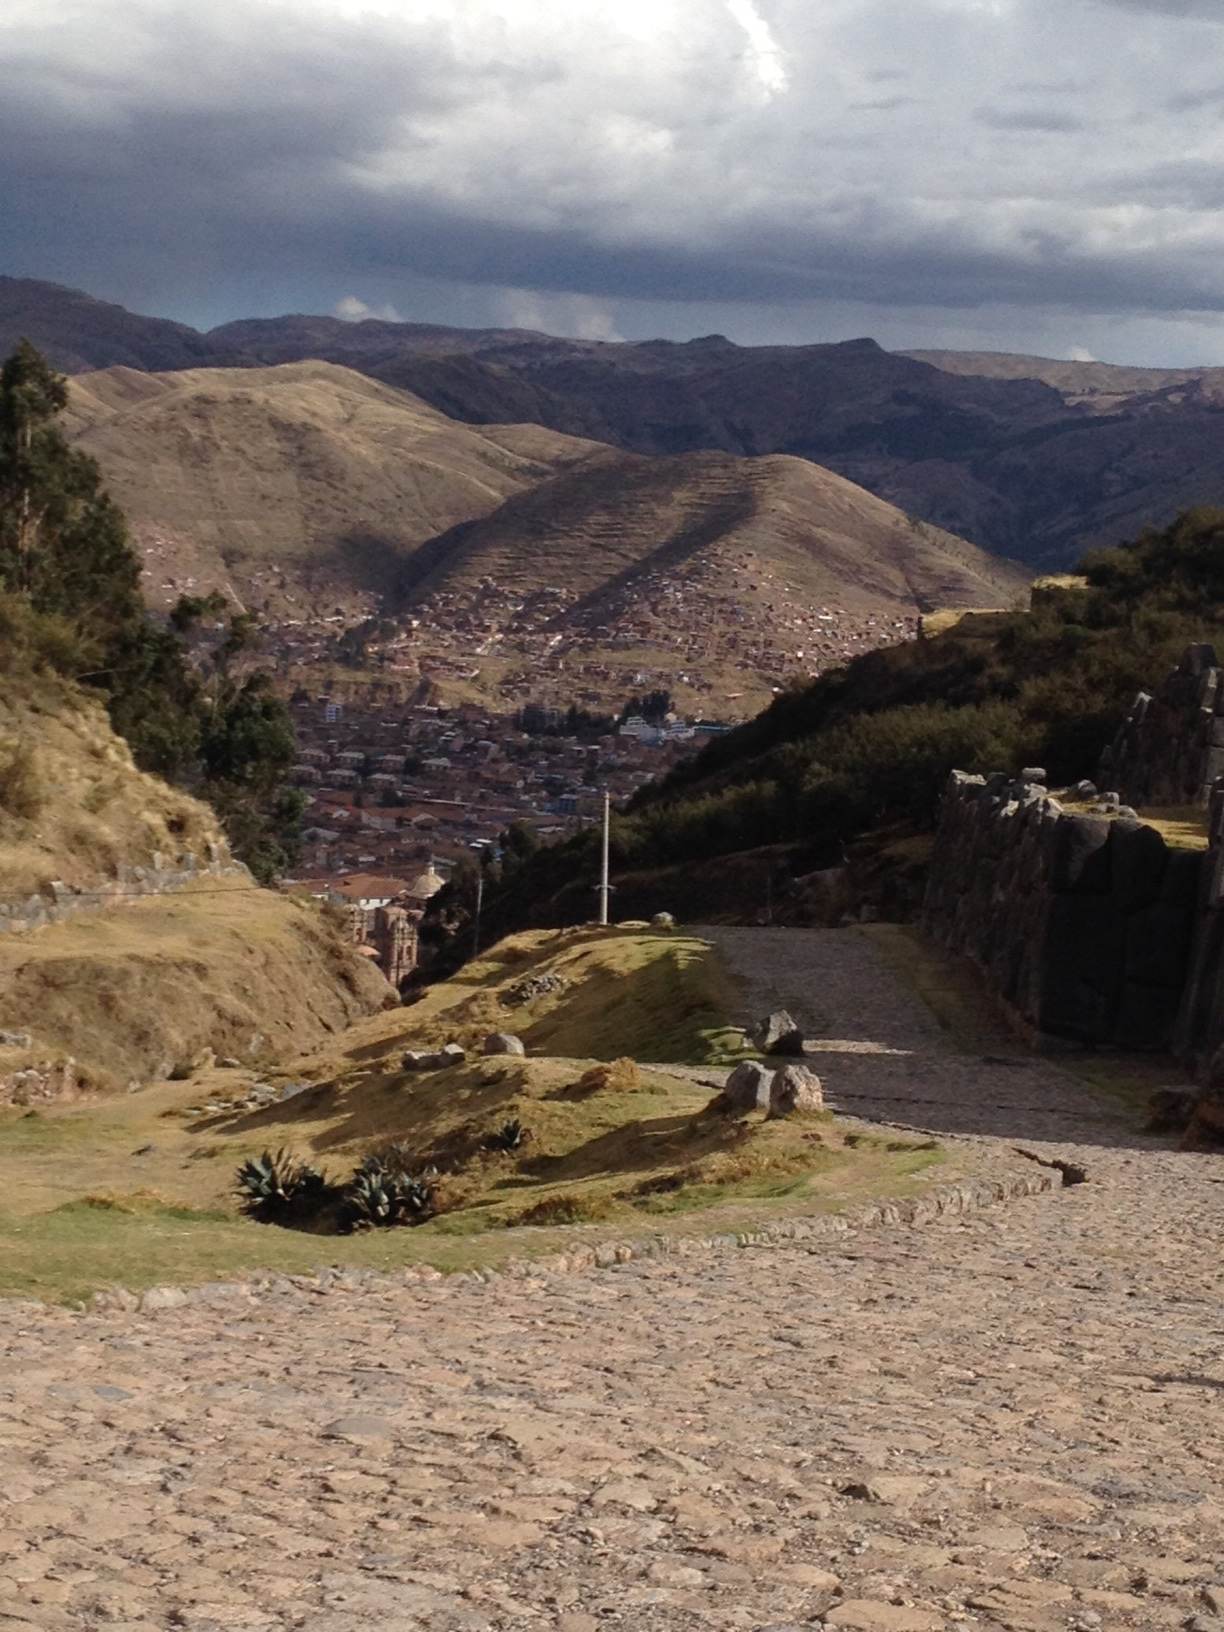 The road back to Cusco